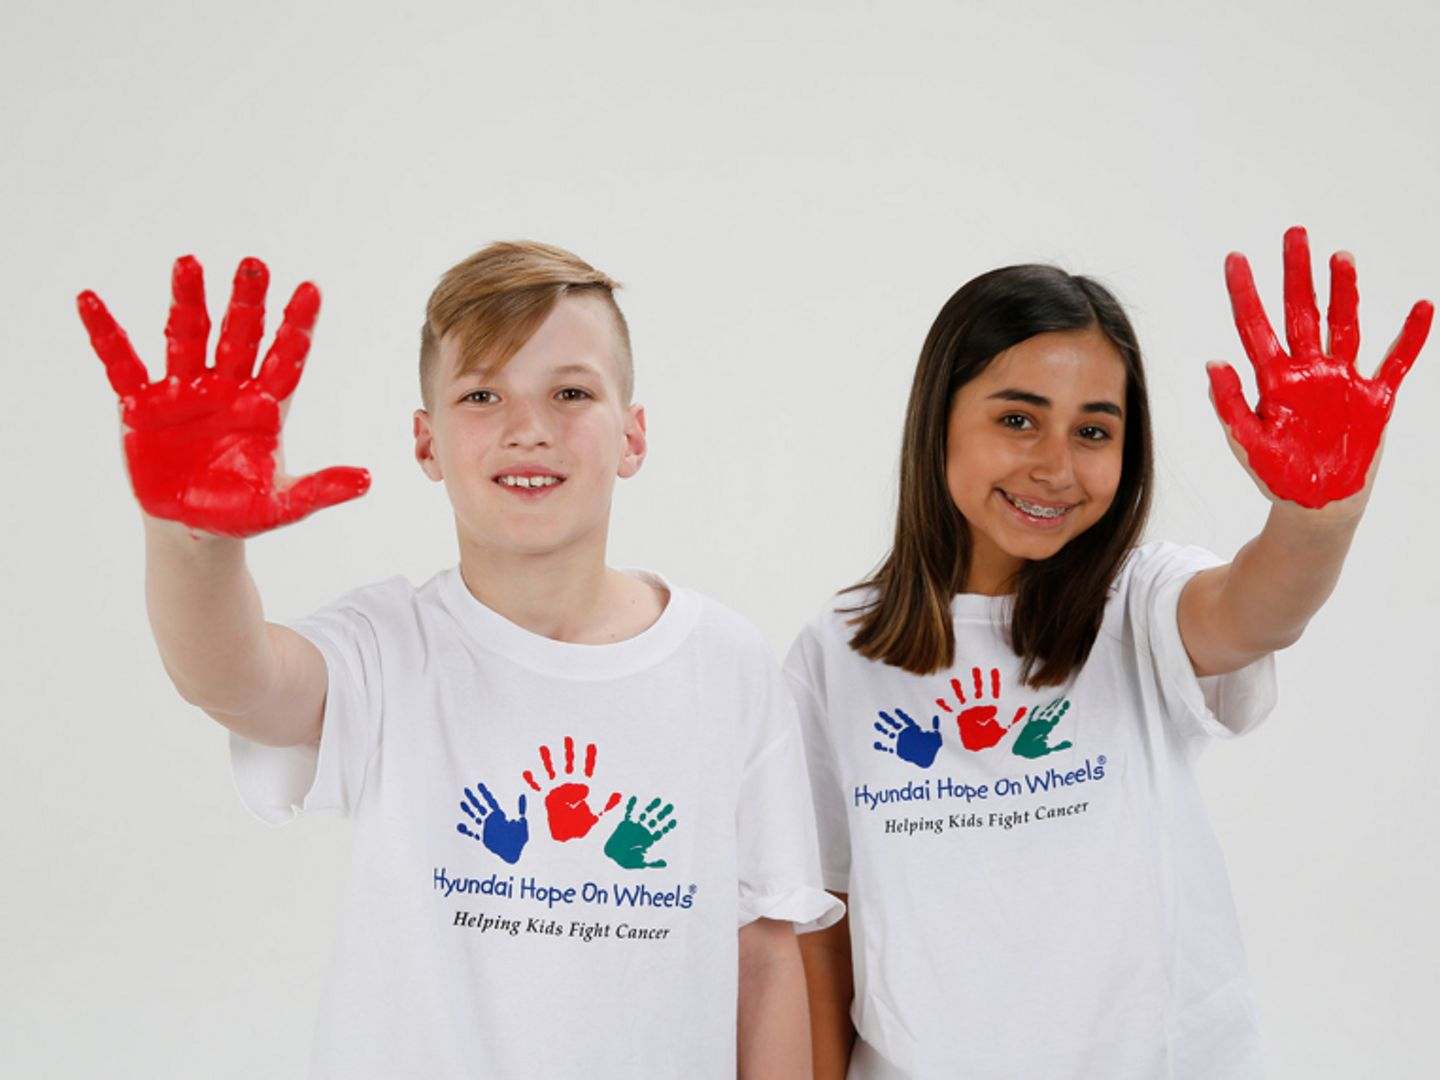 National Youth Ambassadors Jordyn and Alex show their red hands for Hope on Wheels